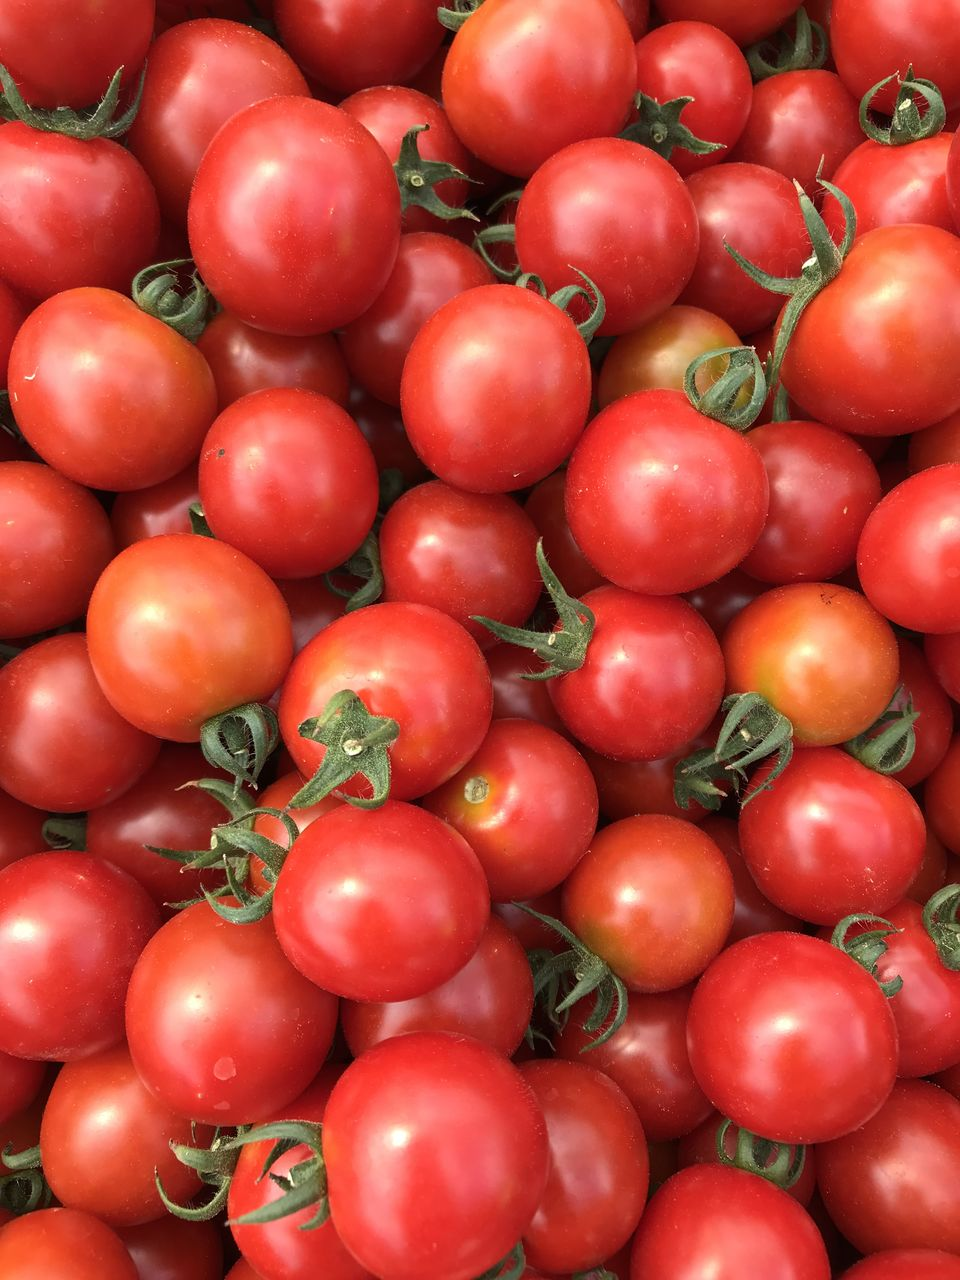 healthy eating, food and drink, food, wellbeing, red, vegetable, freshness, fruit, full frame, large group of objects, tomato, market, backgrounds, for sale, retail, abundance, still life, no people, close-up, day, sale, outdoors, ripe, retail display